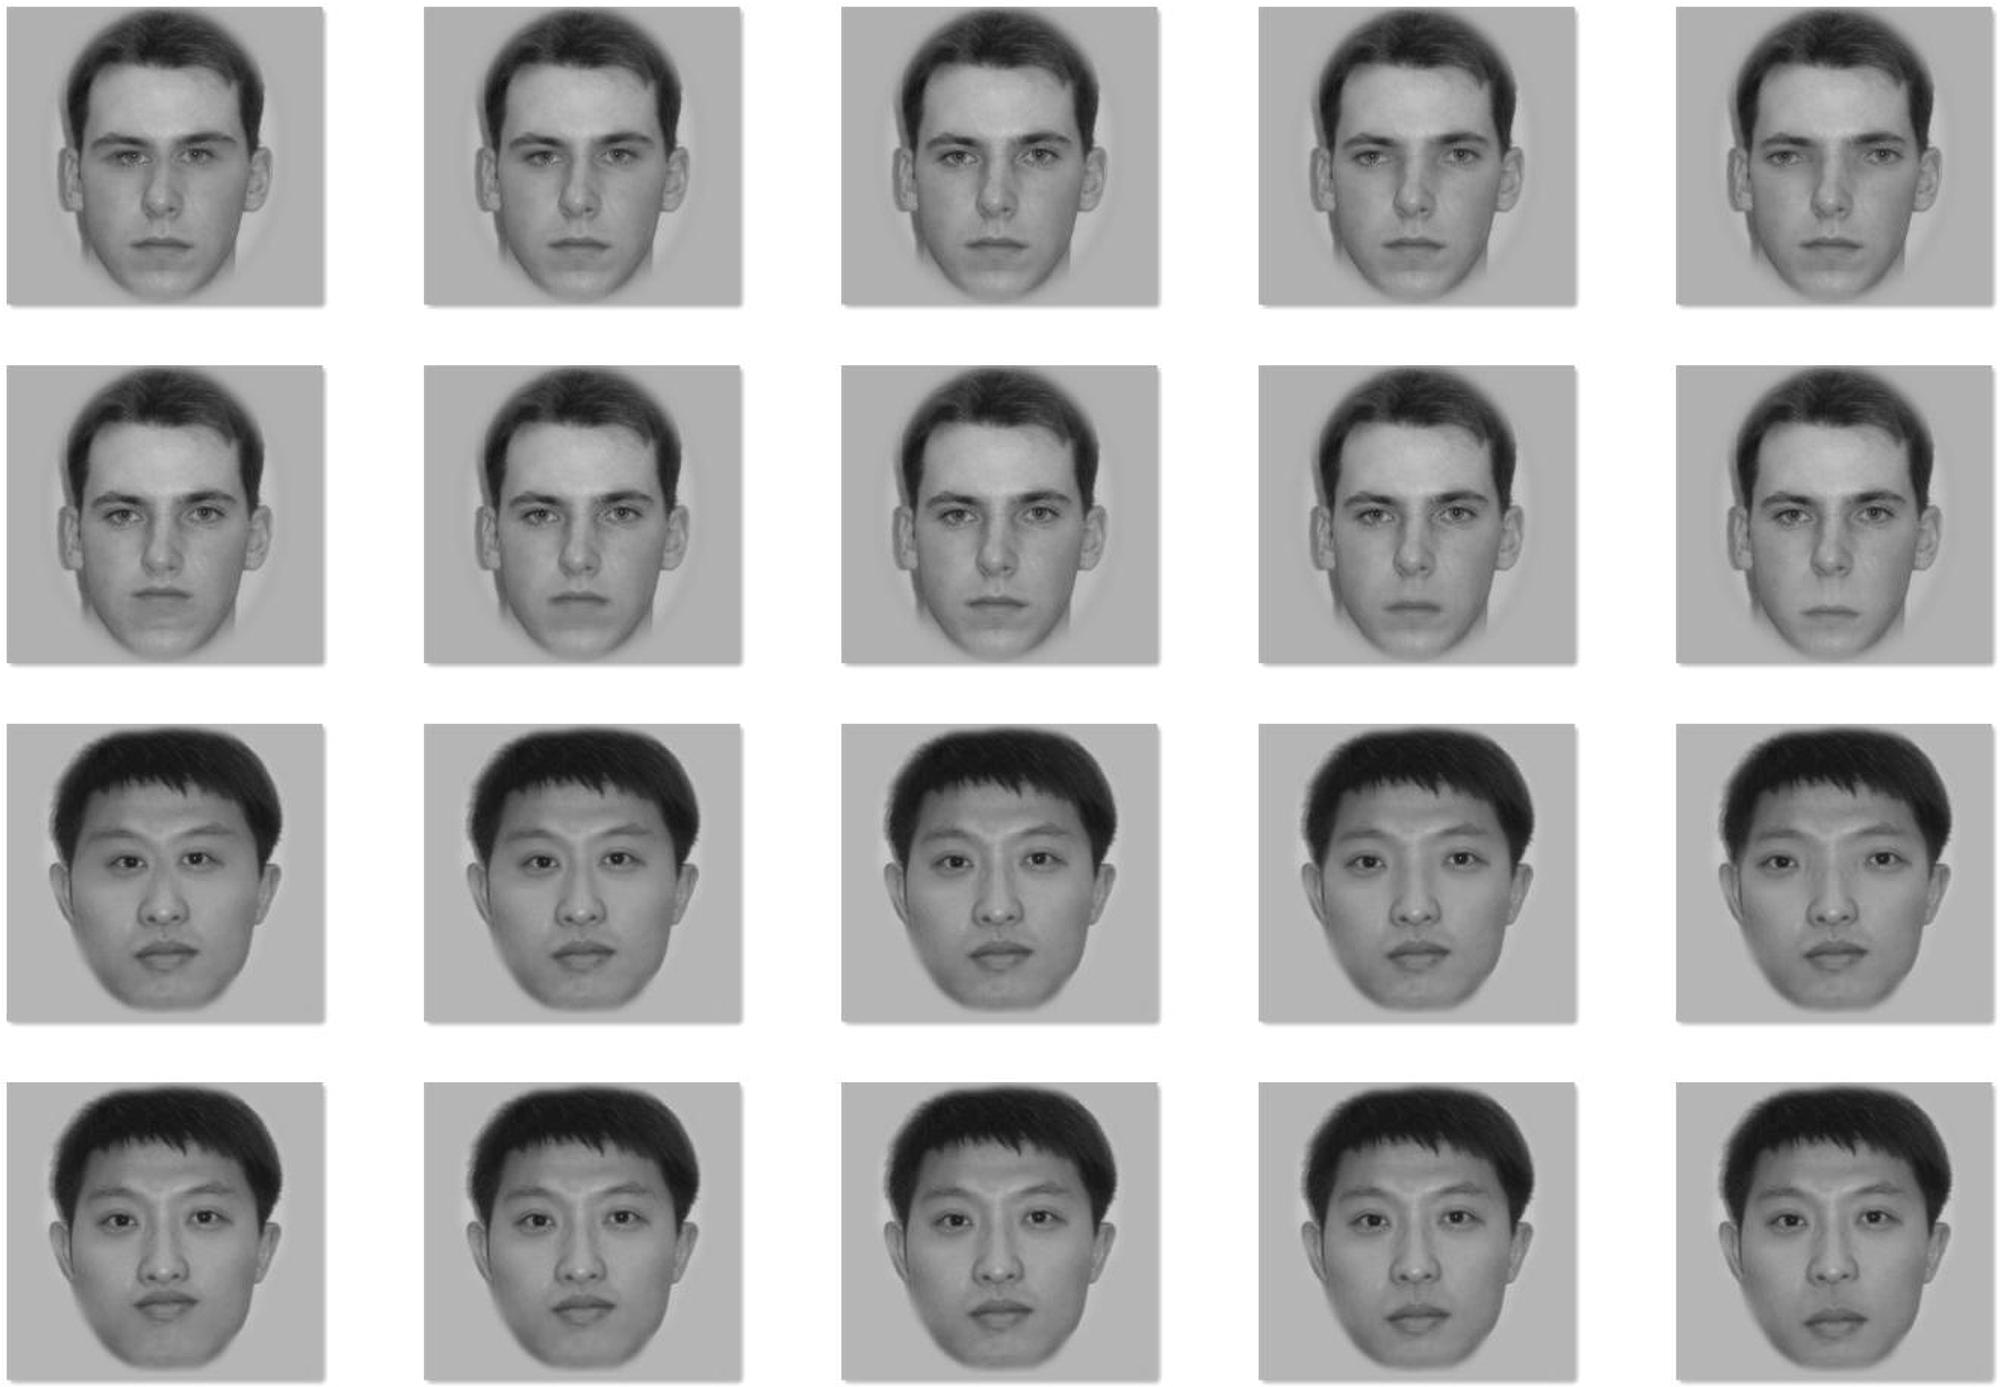 Asian Test Face 42